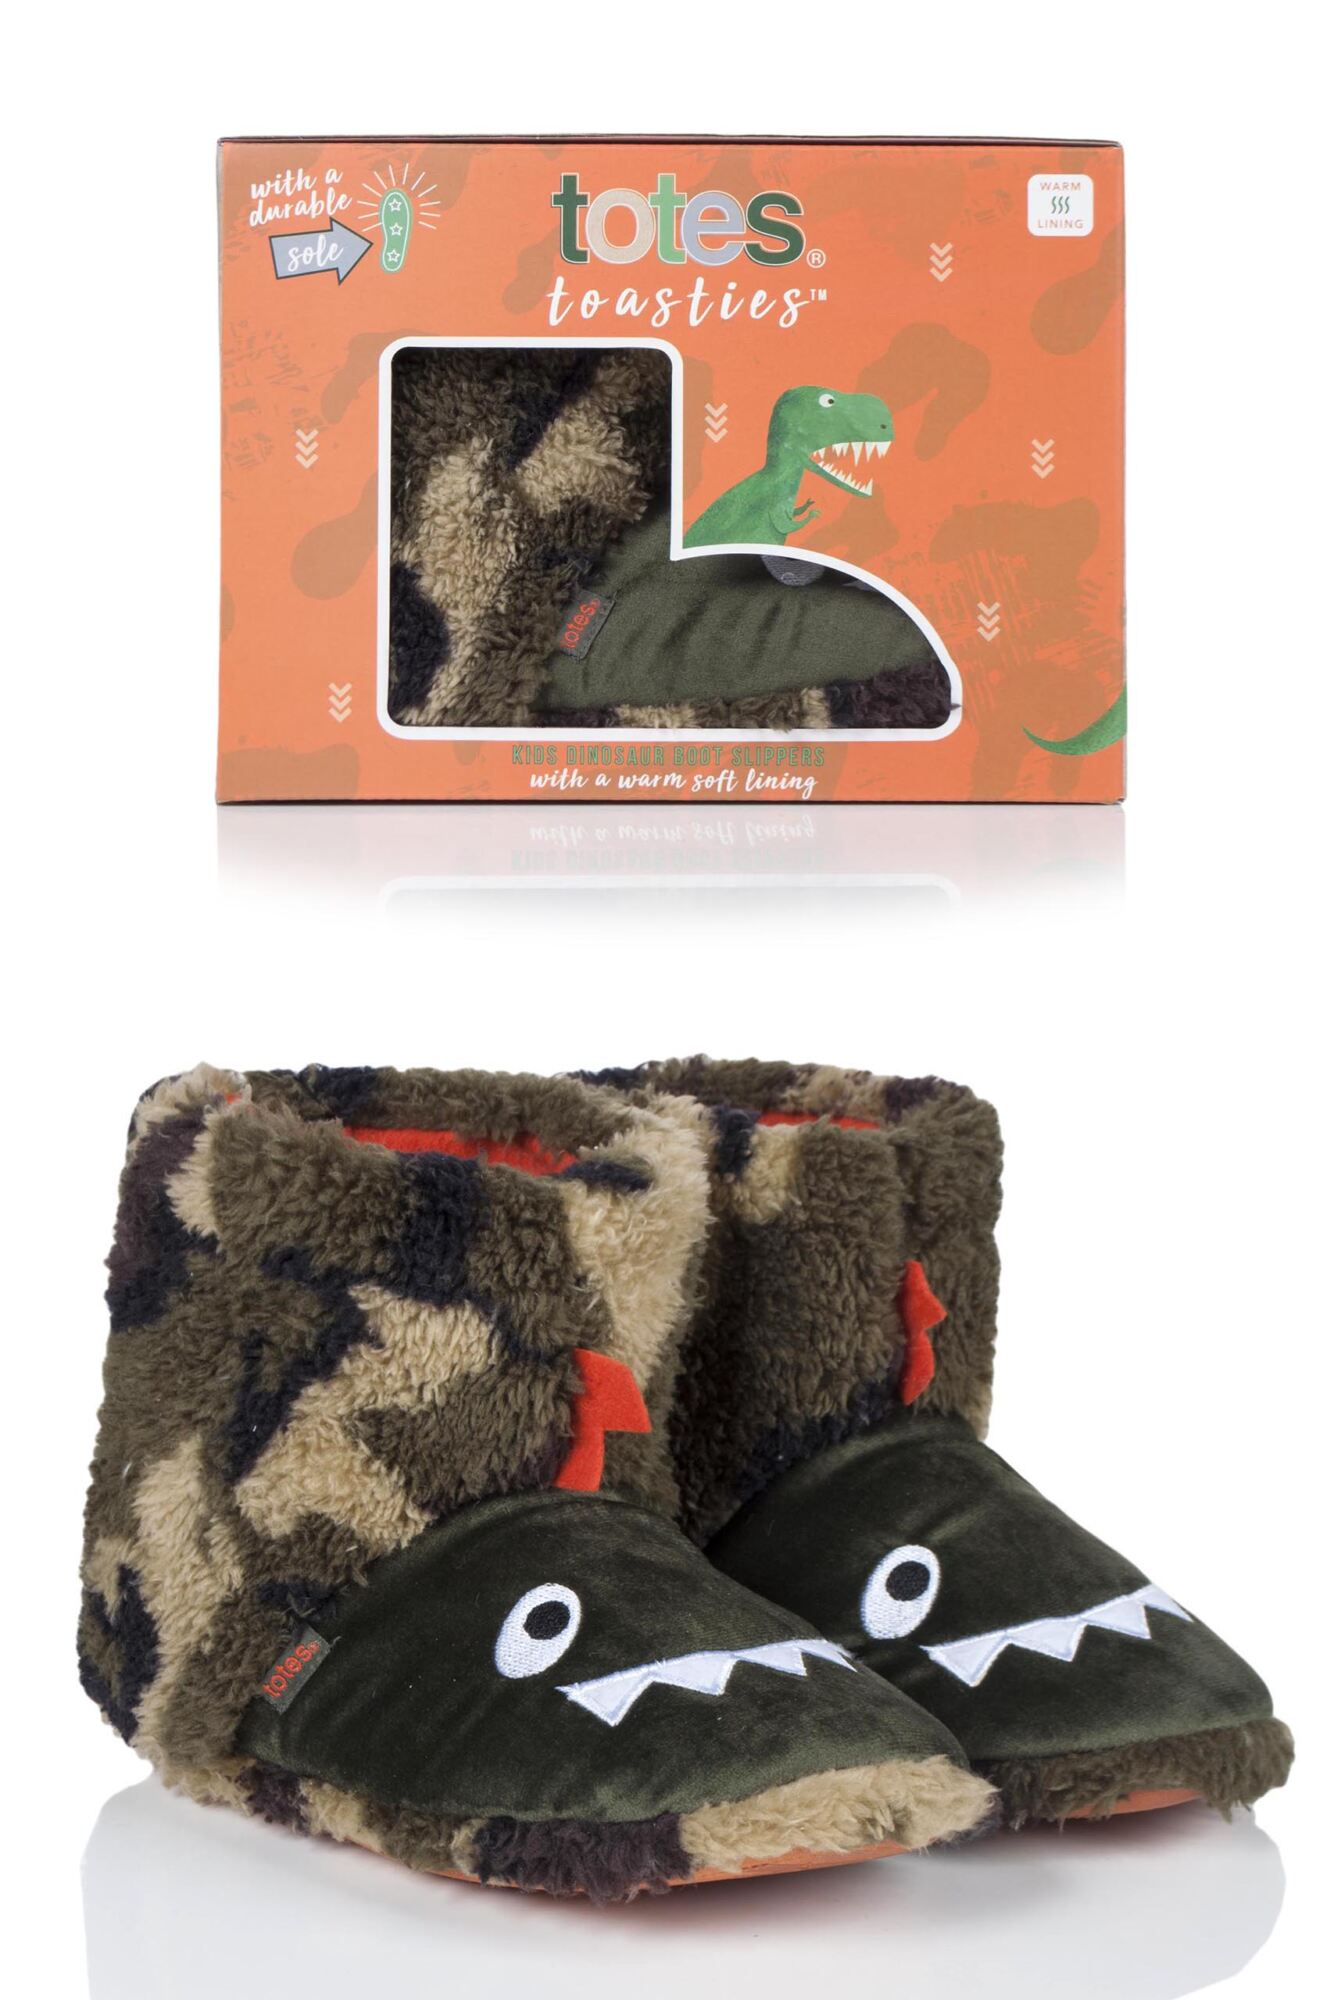 1 Pair Lined Bootie Slippers Girls - Totes